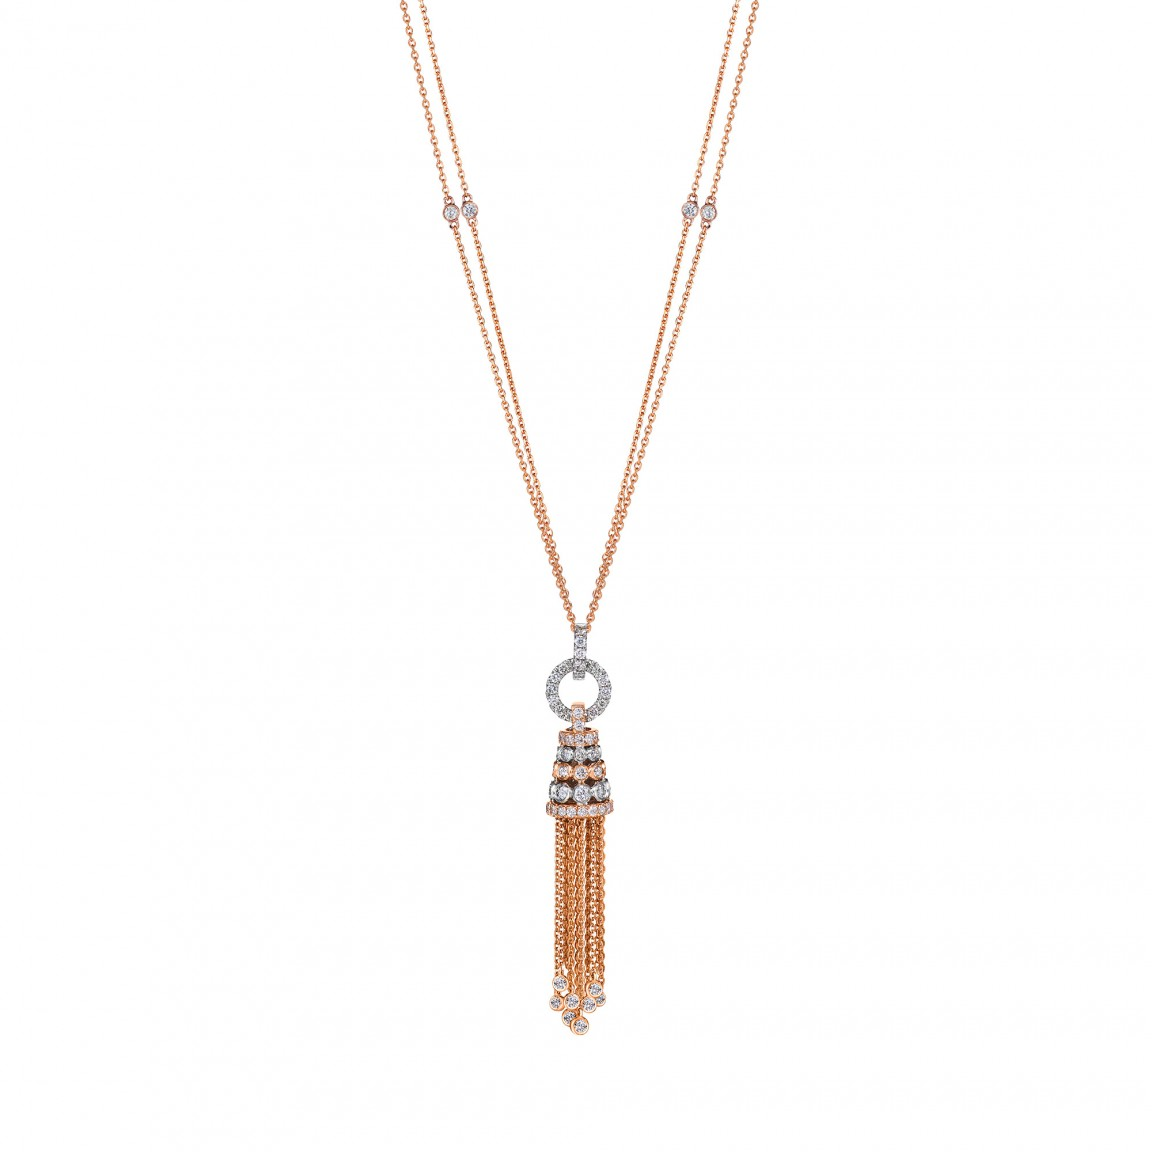 YÒU (佑) Diamond-Adorned Tassel Pendant